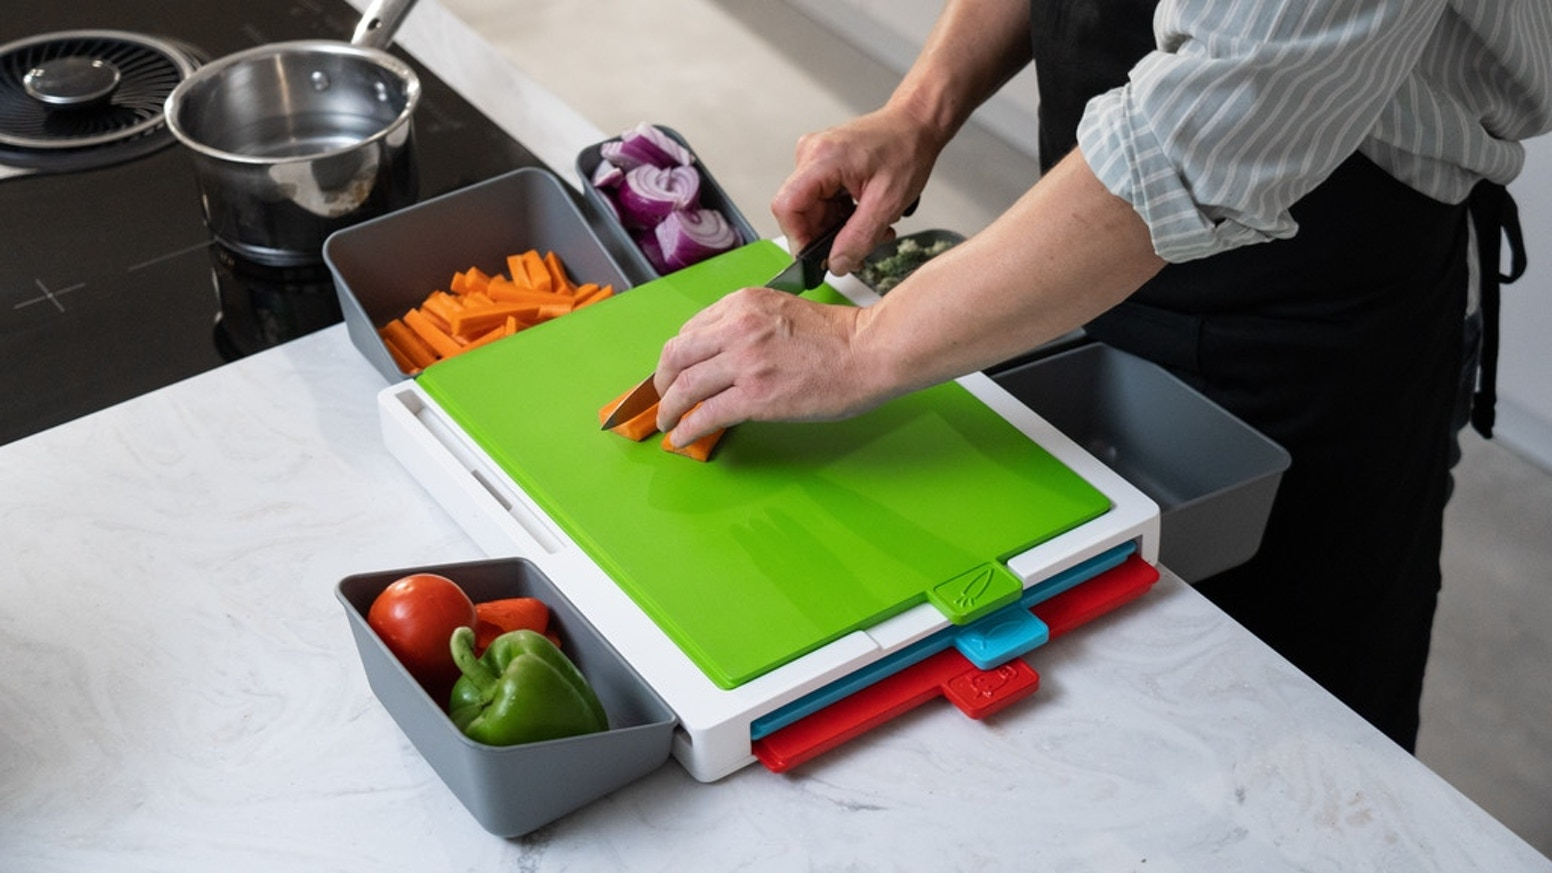 Chopsy is a multi use food preparation station combining chopping boards and pods for easy meal prep and cooking.